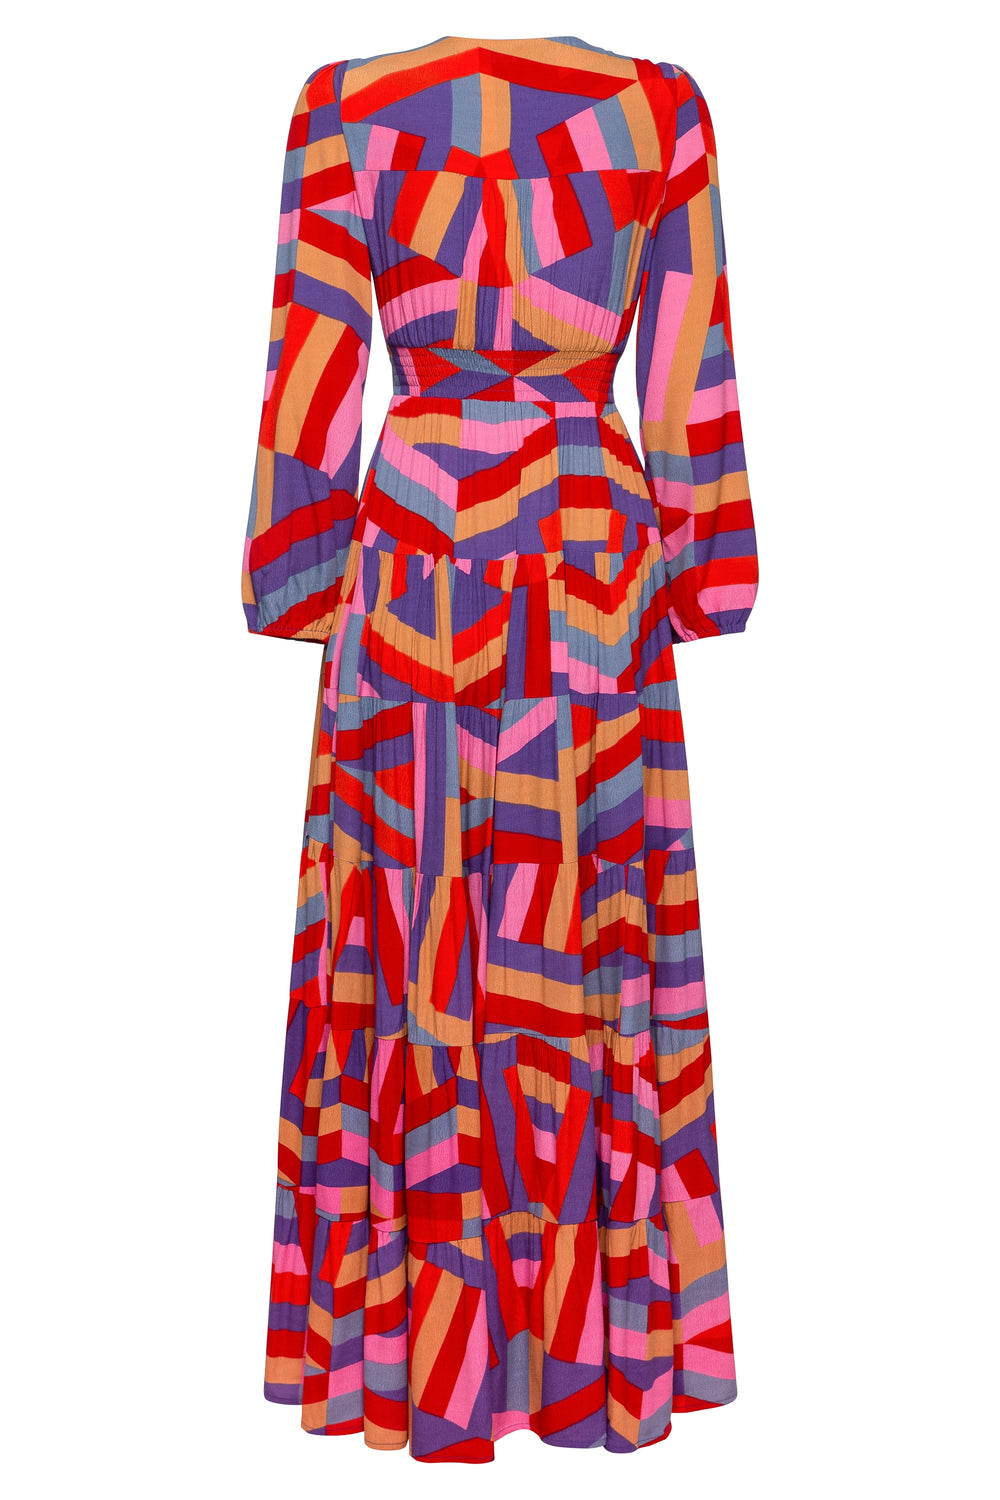 Marley Maxi Dress In Harlequin